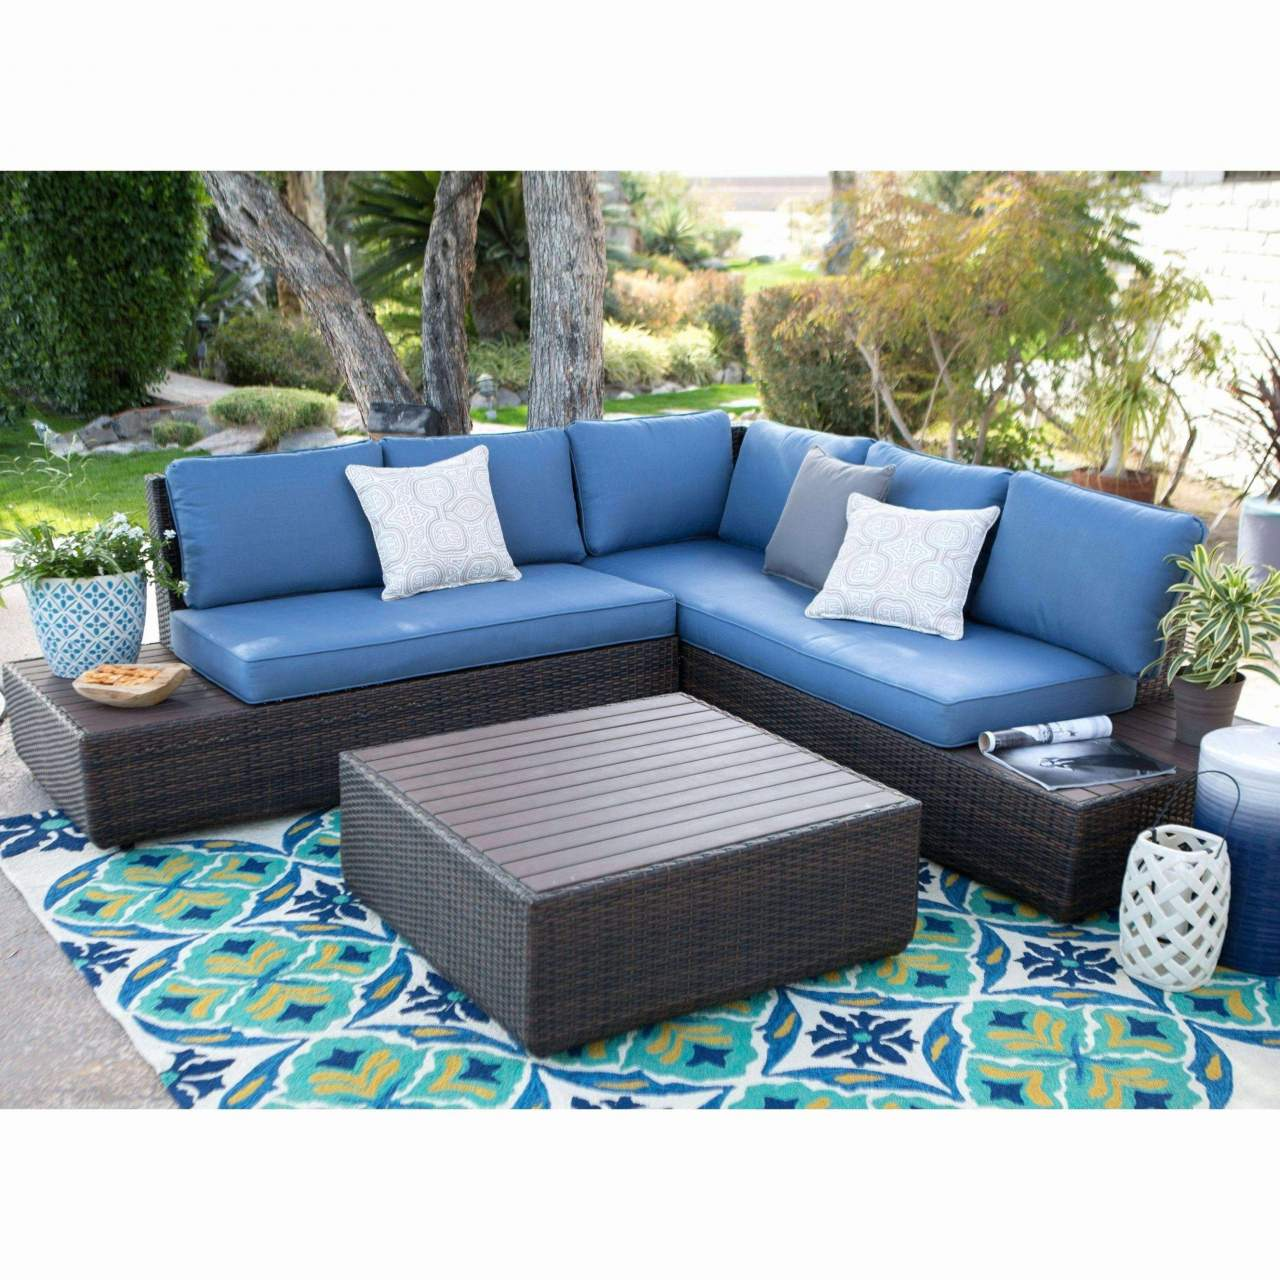 daybed couch 45 einzigartig garten couch holz pic durch daybed couch 1